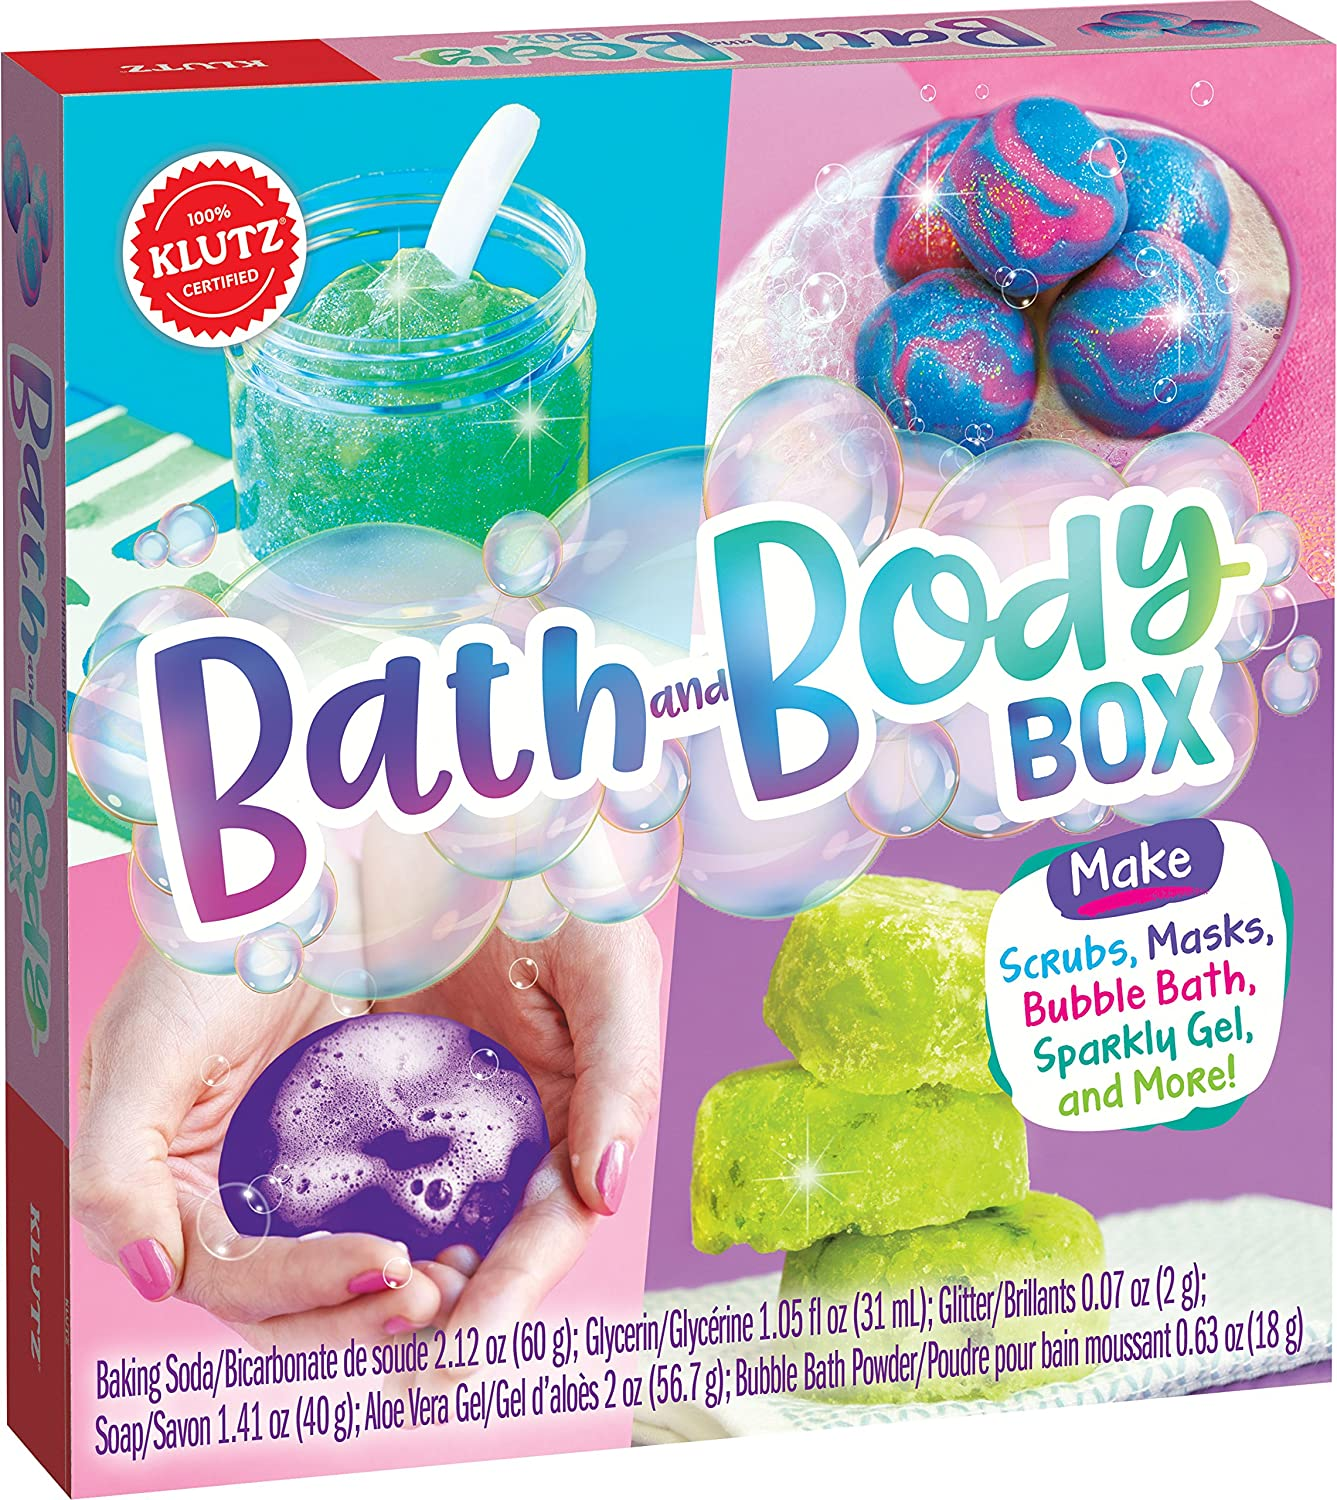 Bath and Body Box